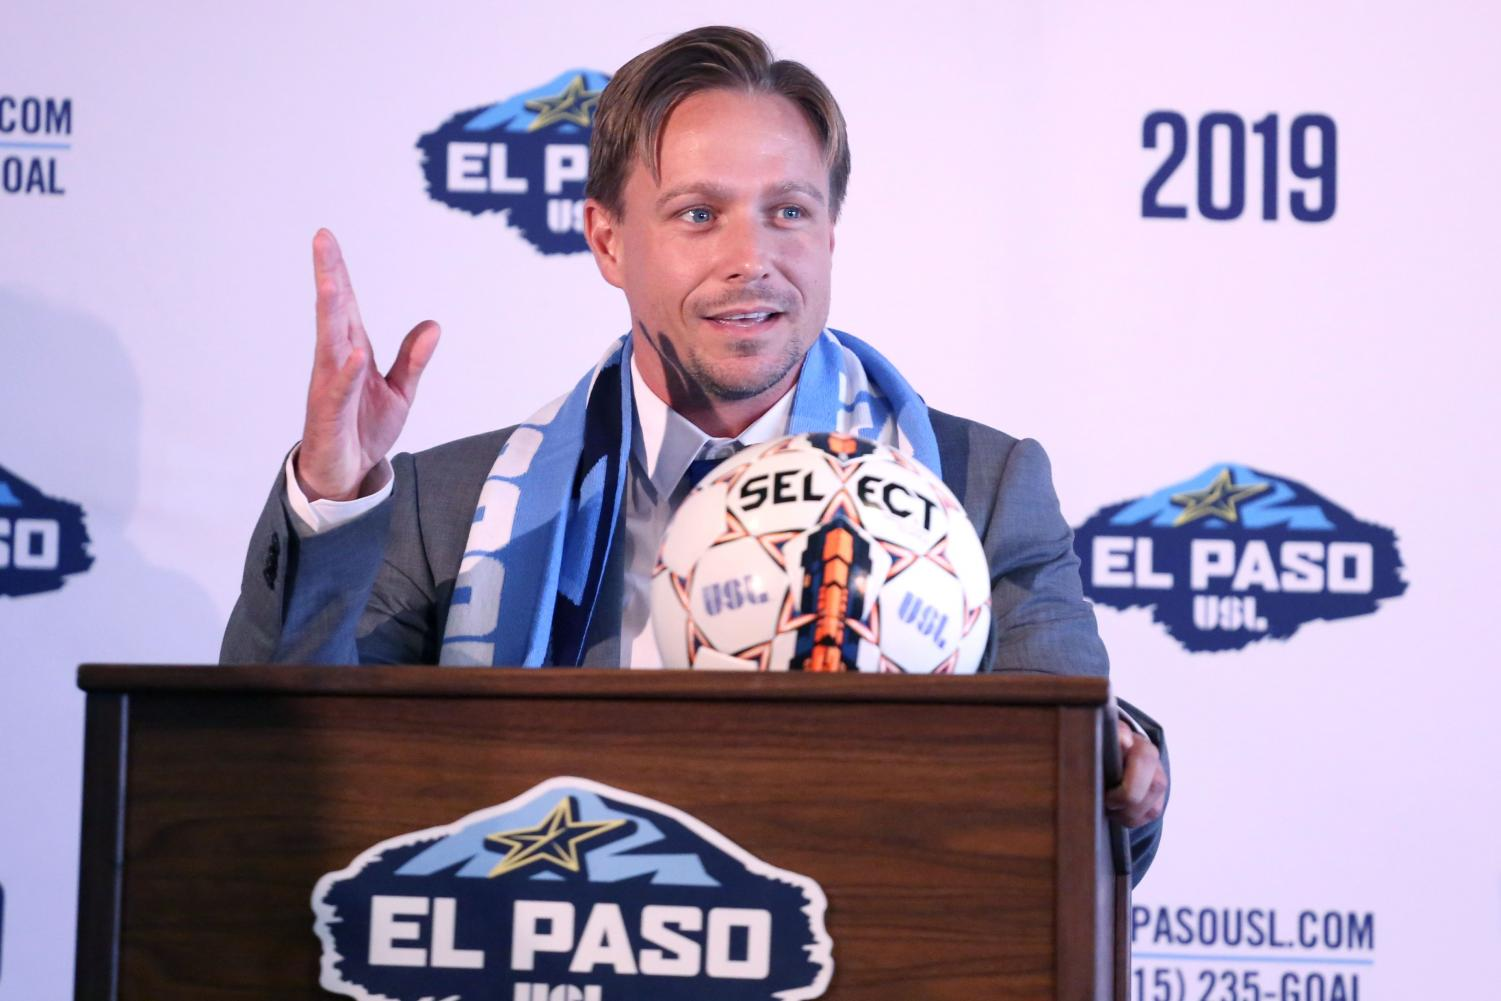 El Paso USL President, Alan Ledford, and General Manager, Andrew Forrest named Mark Lowry as the Head Coach and Technical Director for the team on Wednesday, July 25 at Southwest University Park.